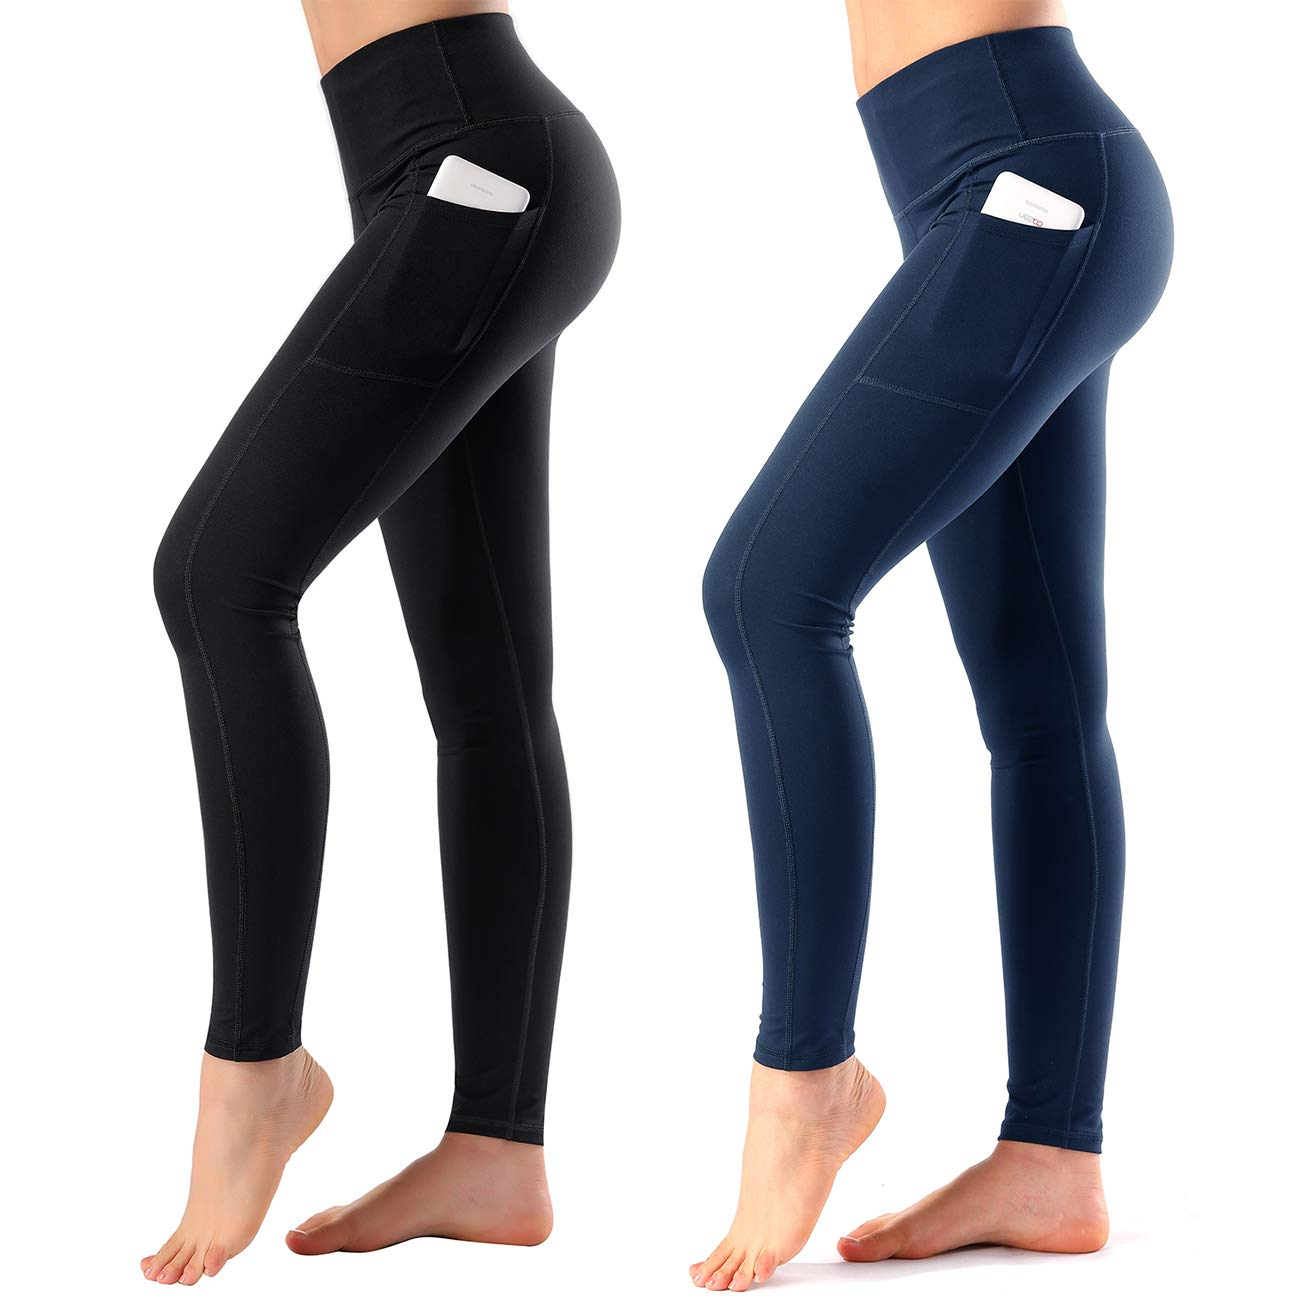 9841 Black+purplish bluee High Waist Yoga Pants with Side & Inner Pocket Sports Leggings Tummy Control